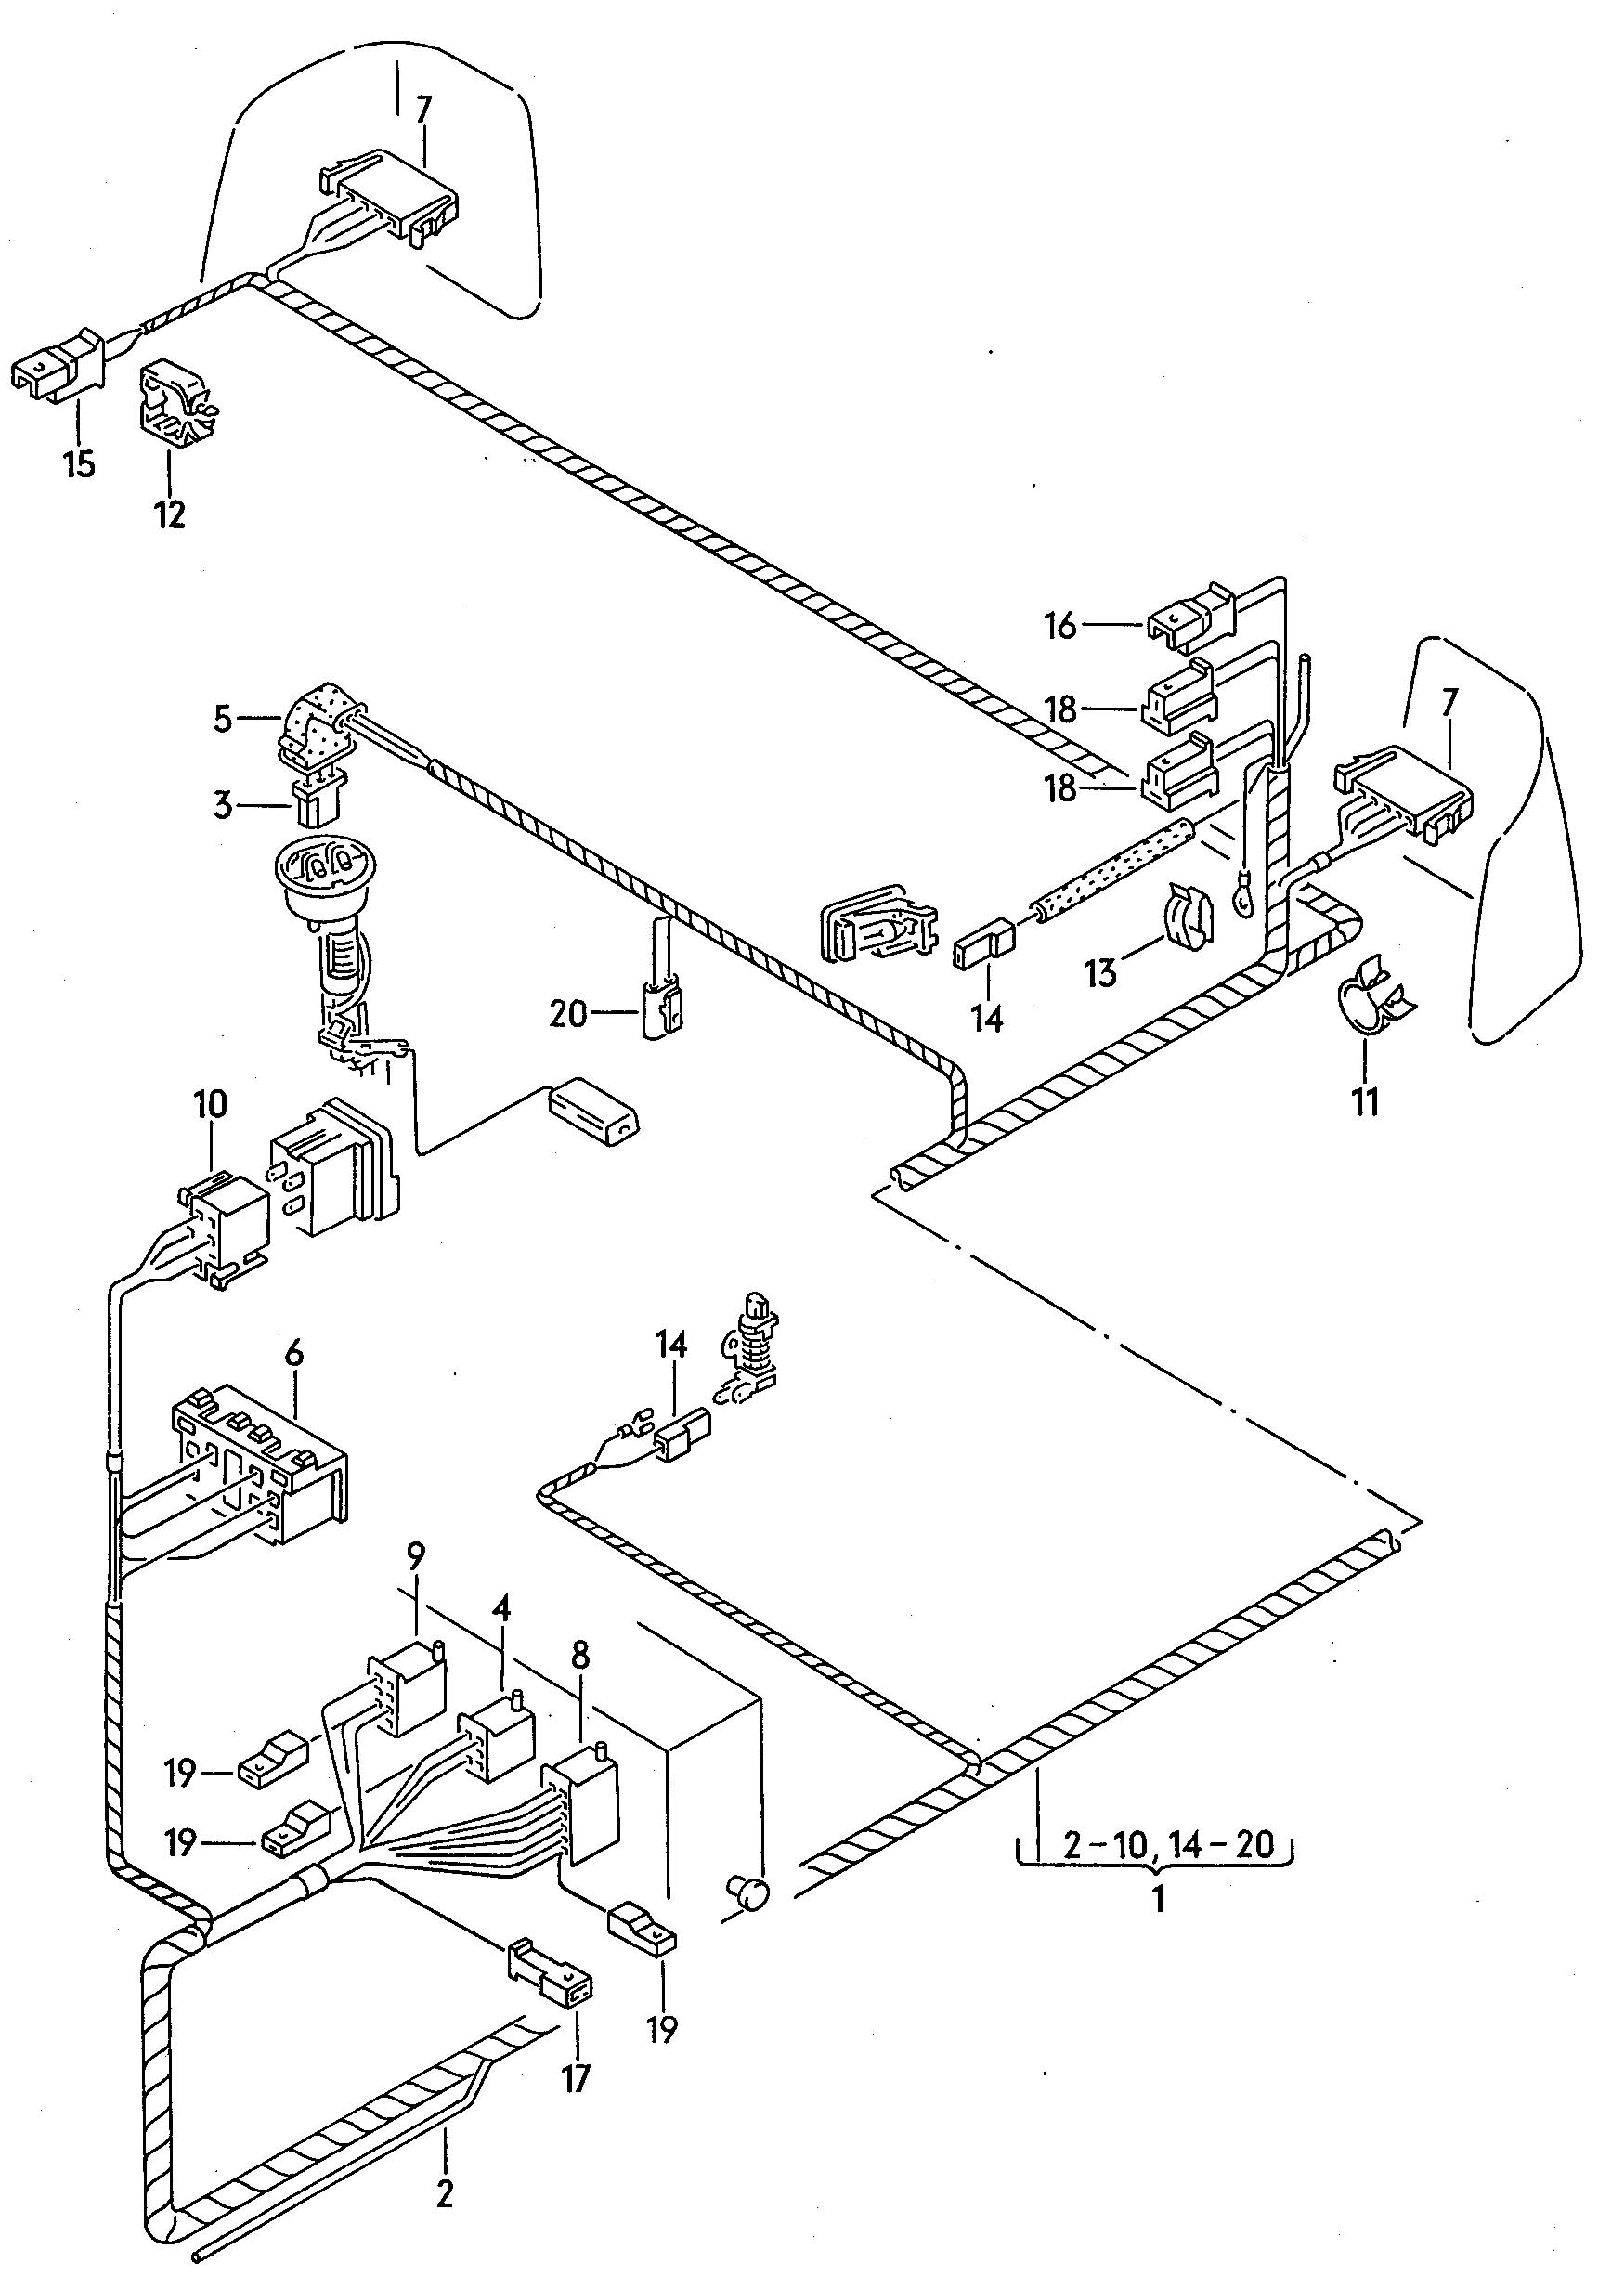 Volkswagen Jetta Rear Brake Parts Diagram. Volkswagen